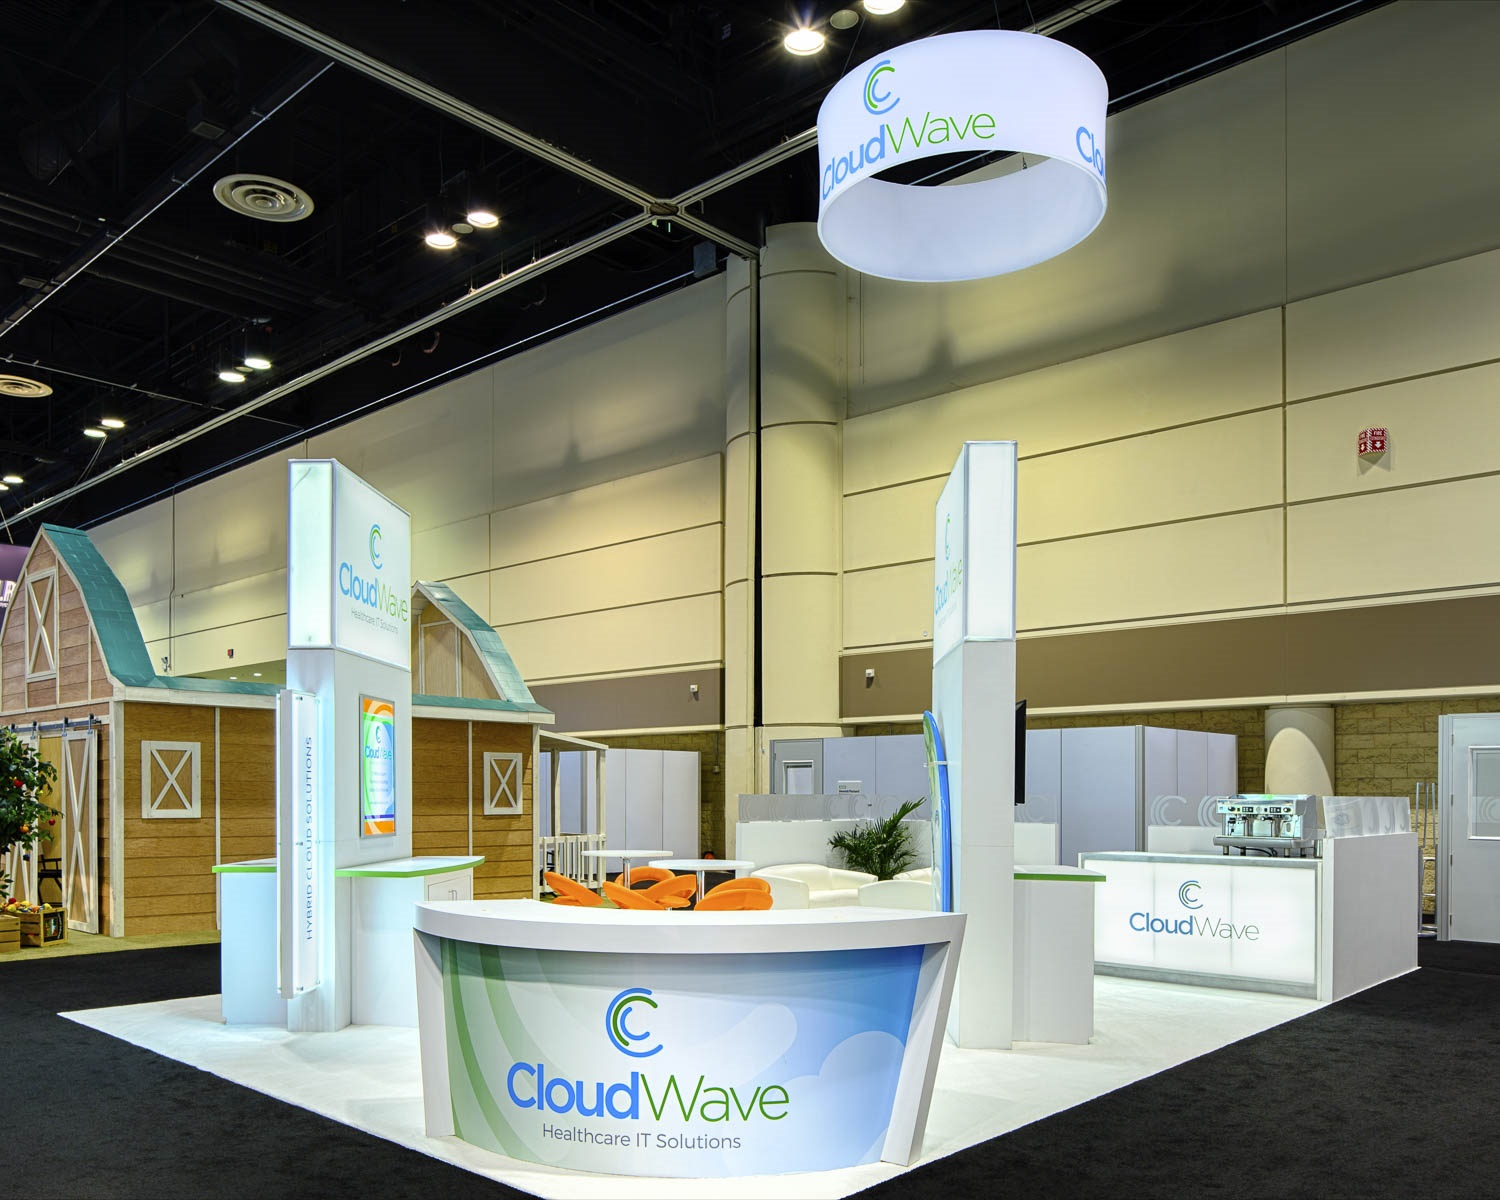 https://gocloudwave.com/wp-content/uploads/2019/07/HIMSS17-Professional-Exhibit-photo.jpg